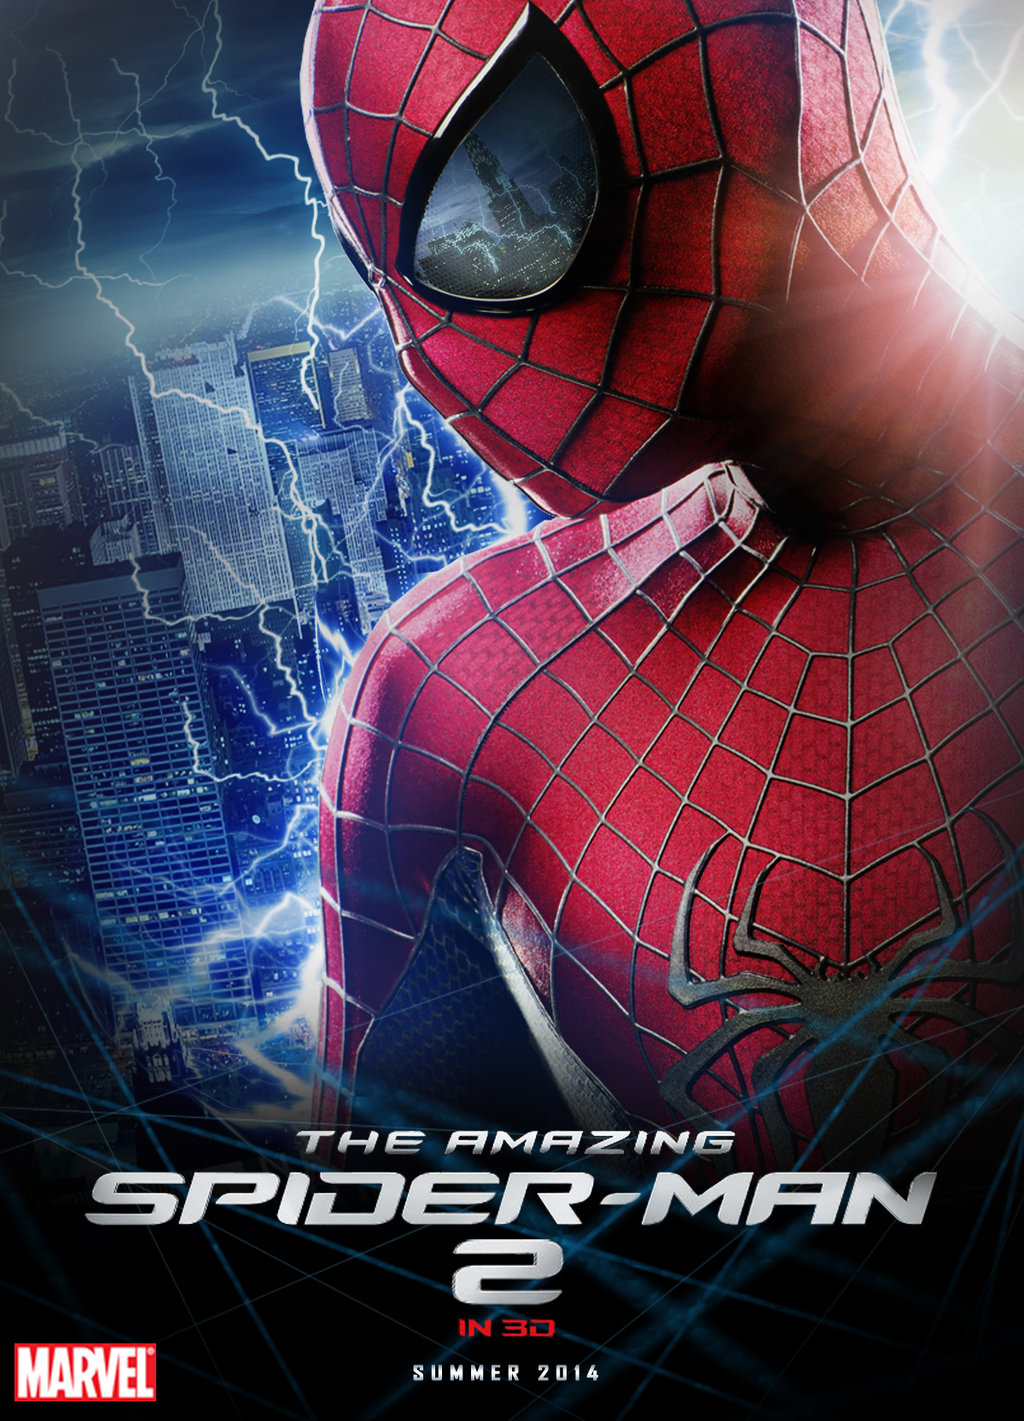 the amazing spider-man dreamfilm